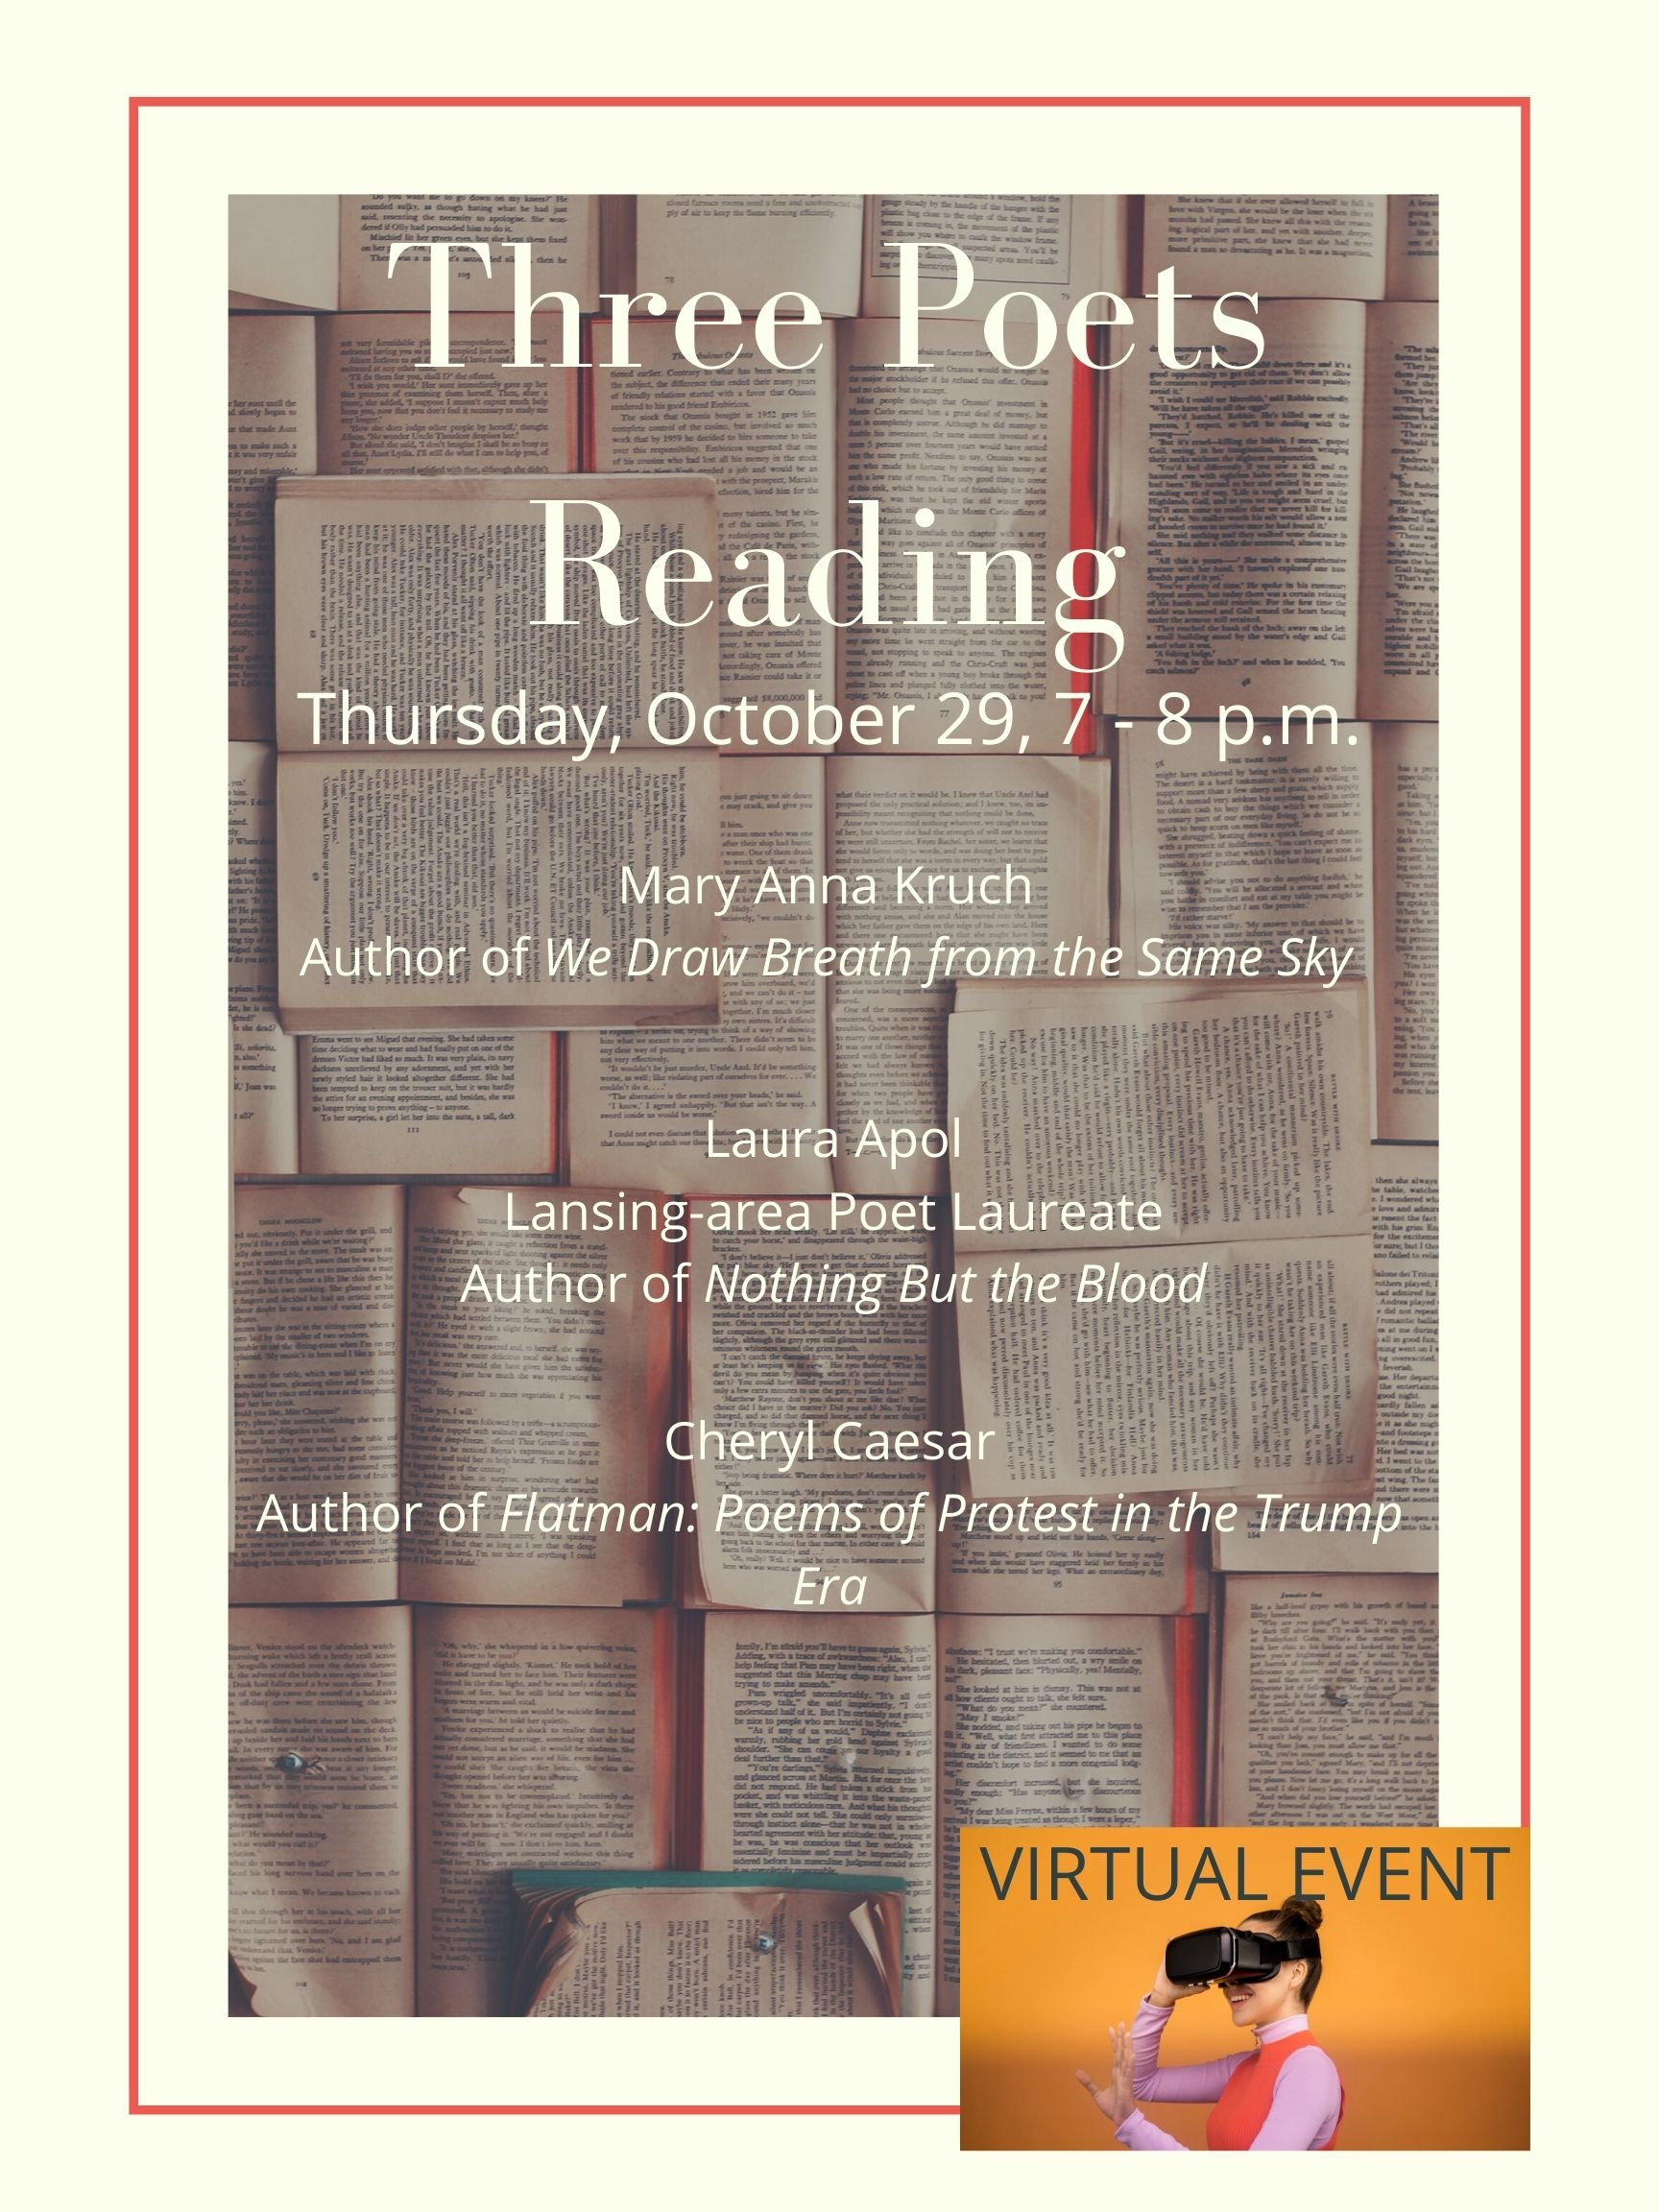 Three Poets Reading poster9_30.2